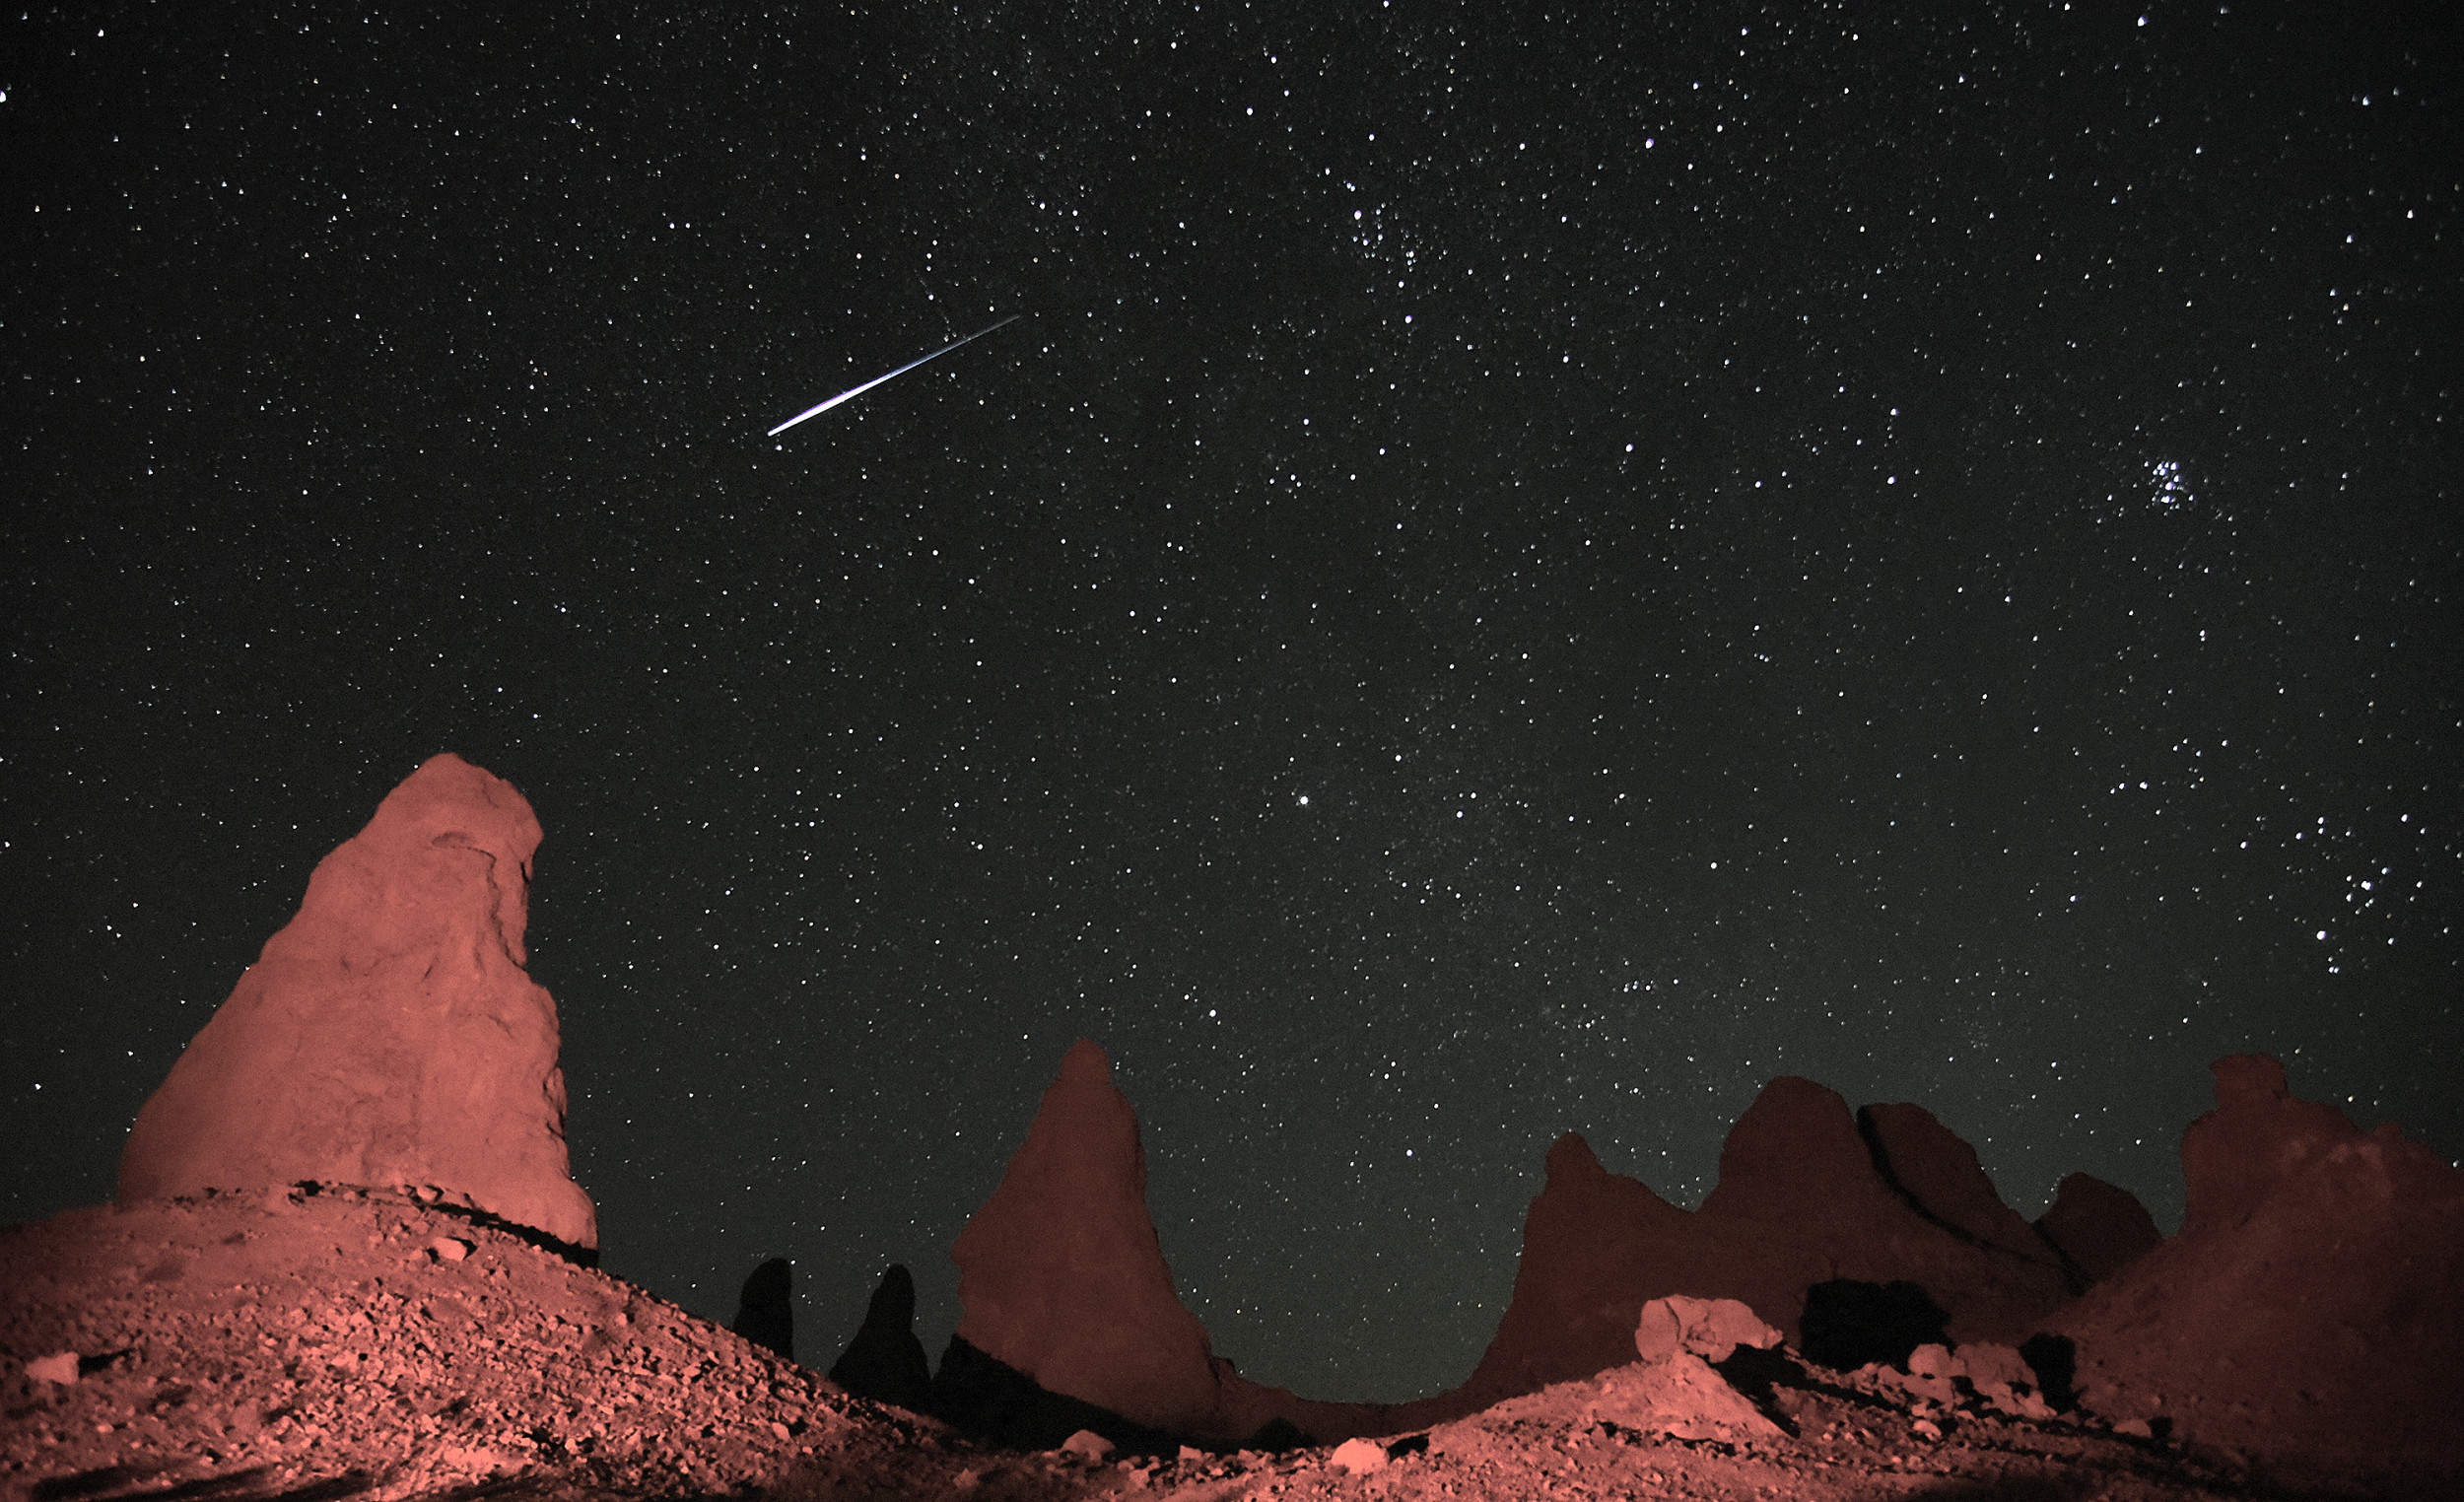 Perseid Meteor Shower 2019: Apps to Help You Watch One of the Best